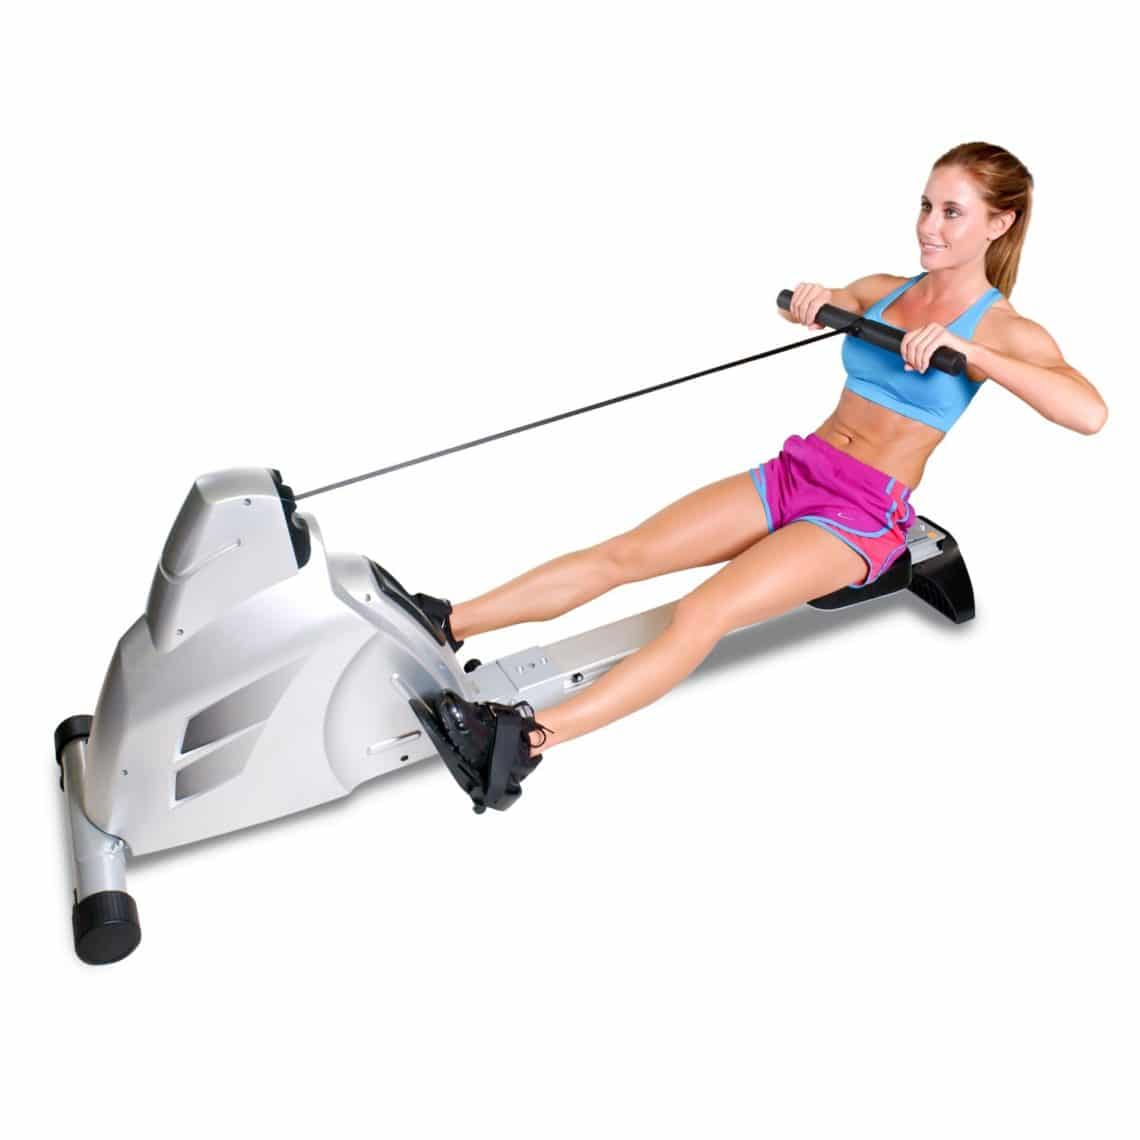 Top Exercise Equipment: Best Rowing Machine Reviews For 2016